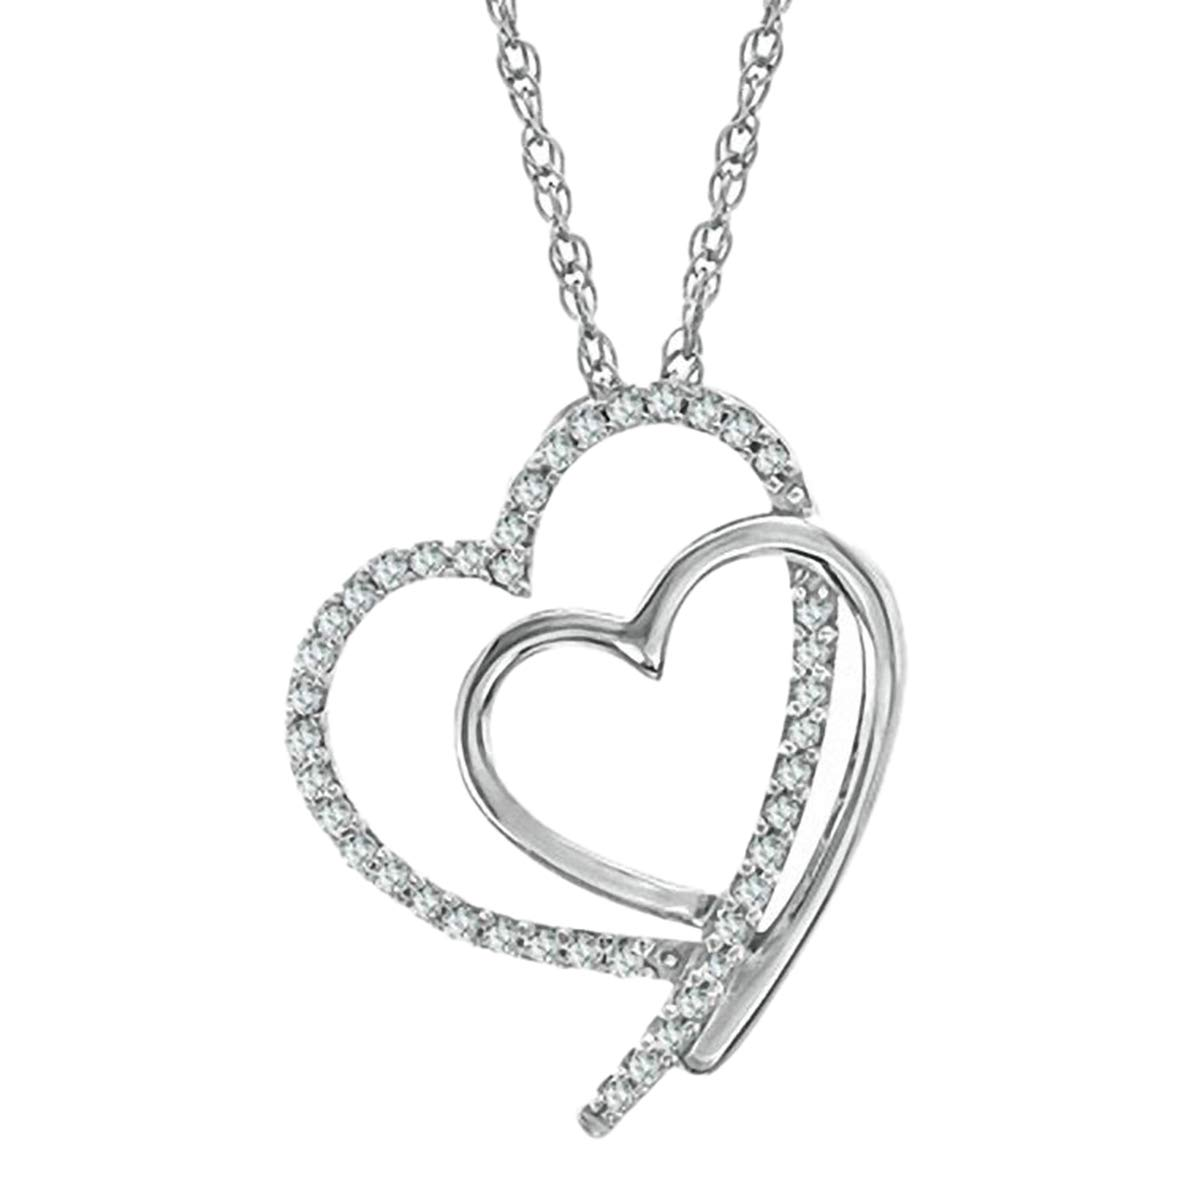 10k Real White Gold 0.25 Ct Round Cut Simulated Diamond Double Heart Pendant With 18 Chain .925 Silver